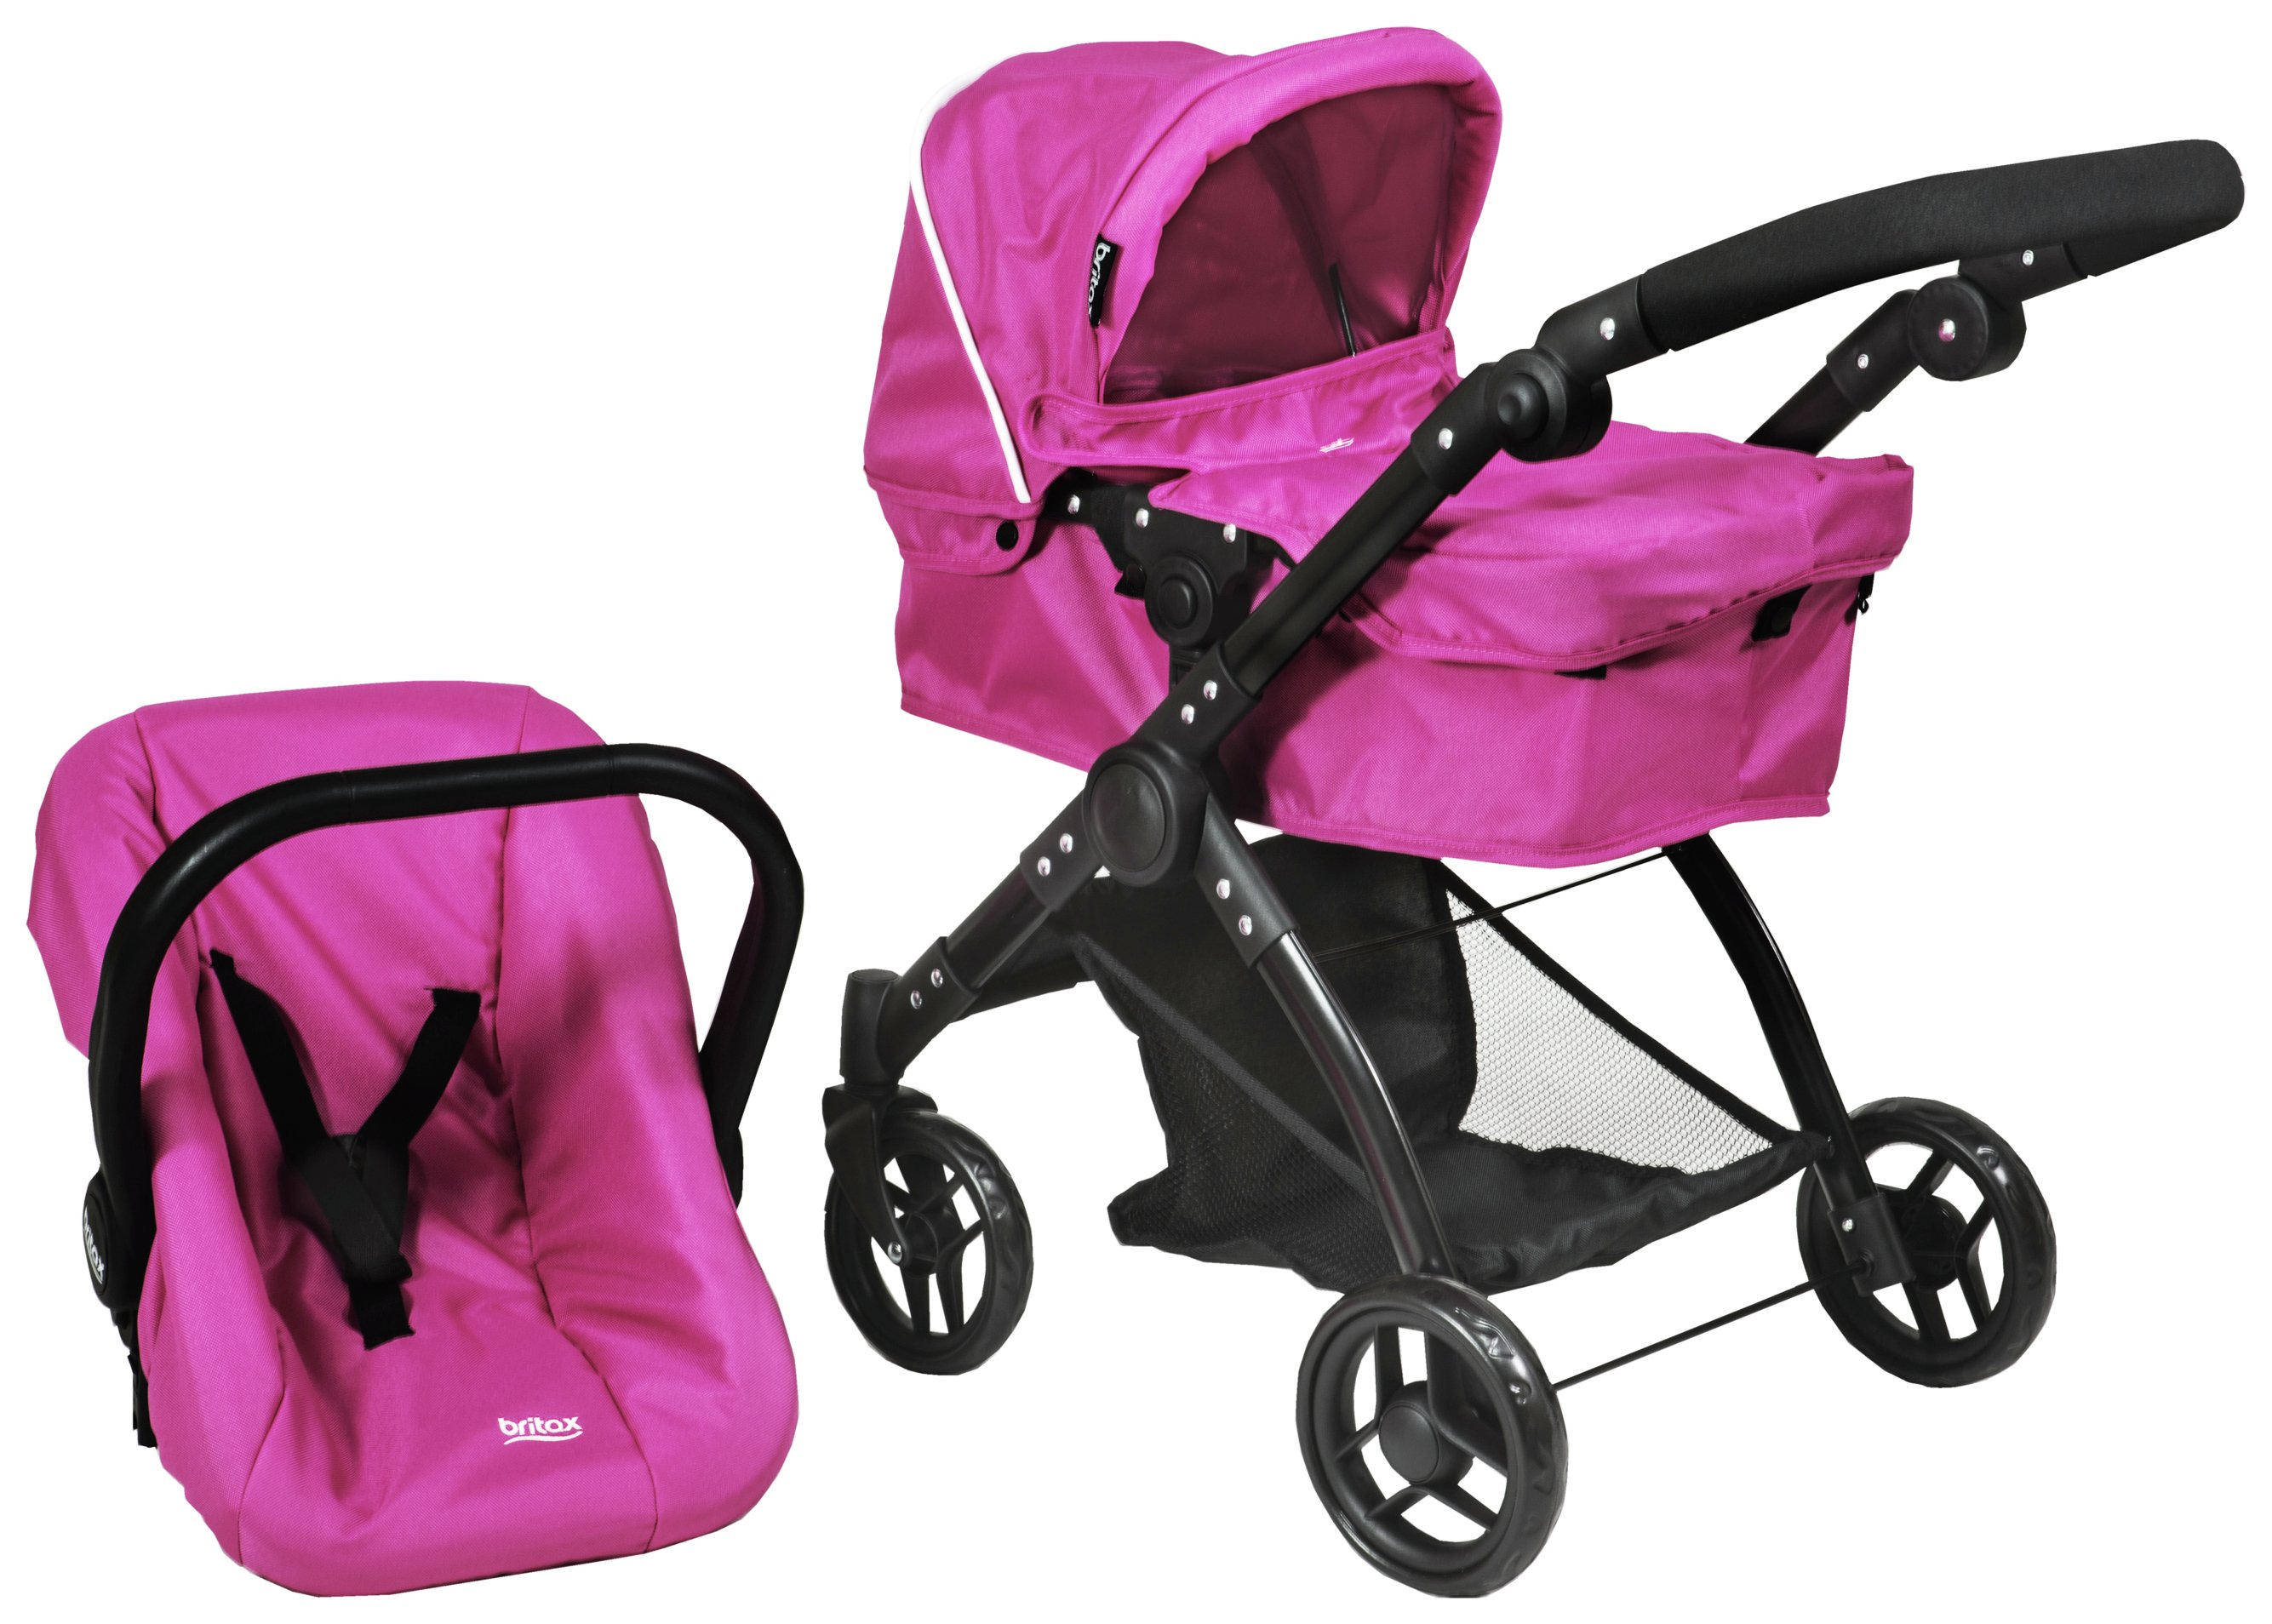 Image of Britax Smile 3 In 1 Dolls Stroller - Hot Pink.